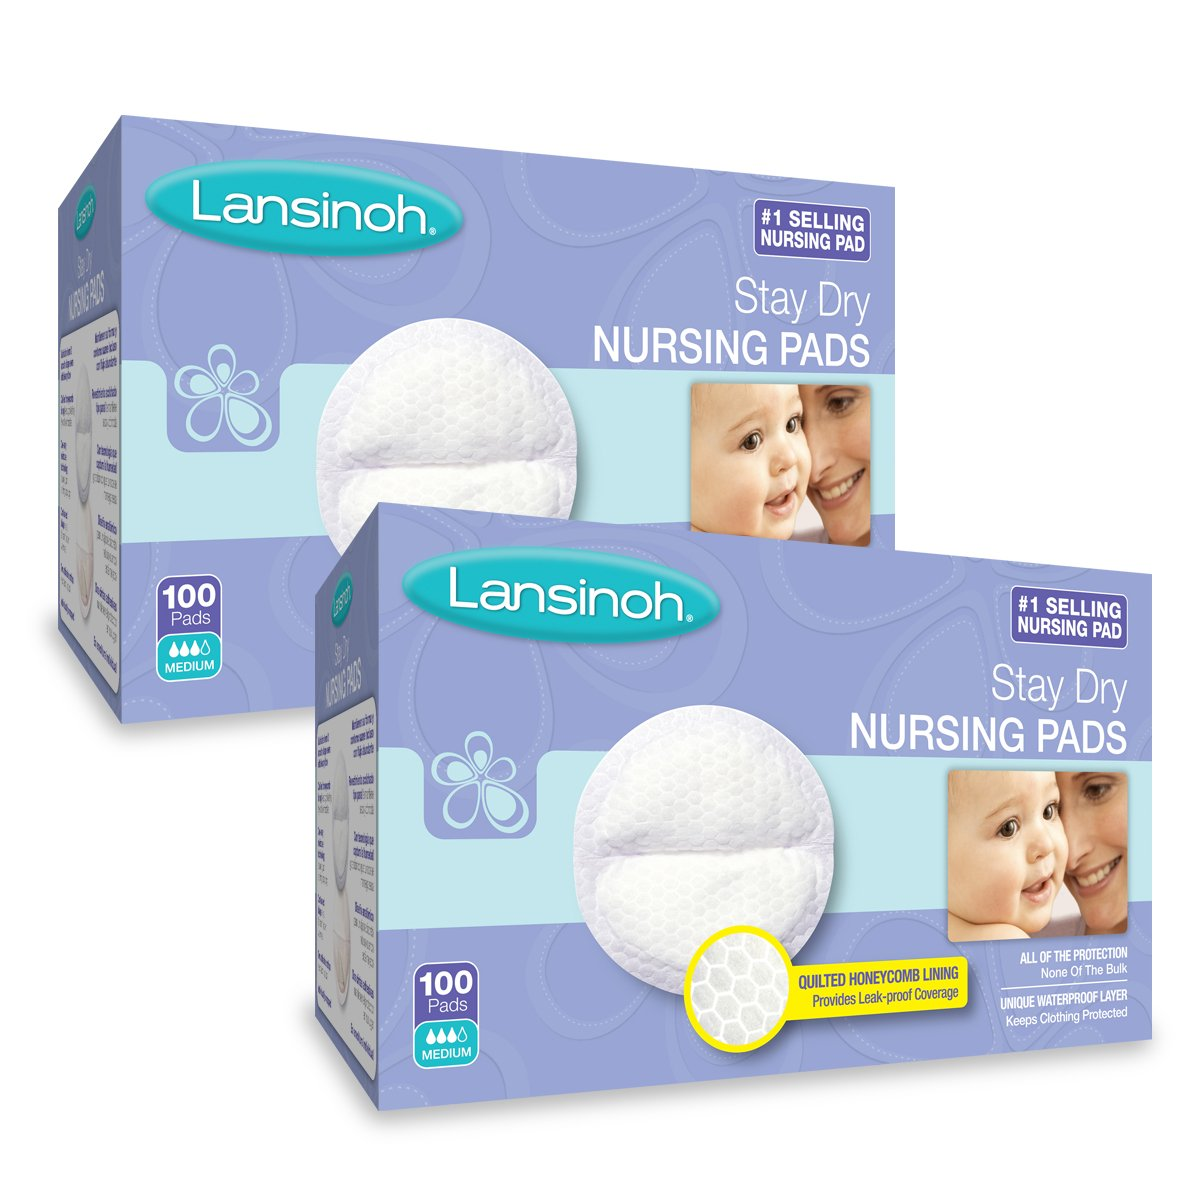 Lansinoh Stay Dry Disposable Nursing Pads, Number One Selling Breastfeeding Pad For Breastfeeding Mothers, Leak Proof Protection, Maximun Comfort and Discretion, 2 Packs of 100 Count (200 Count)